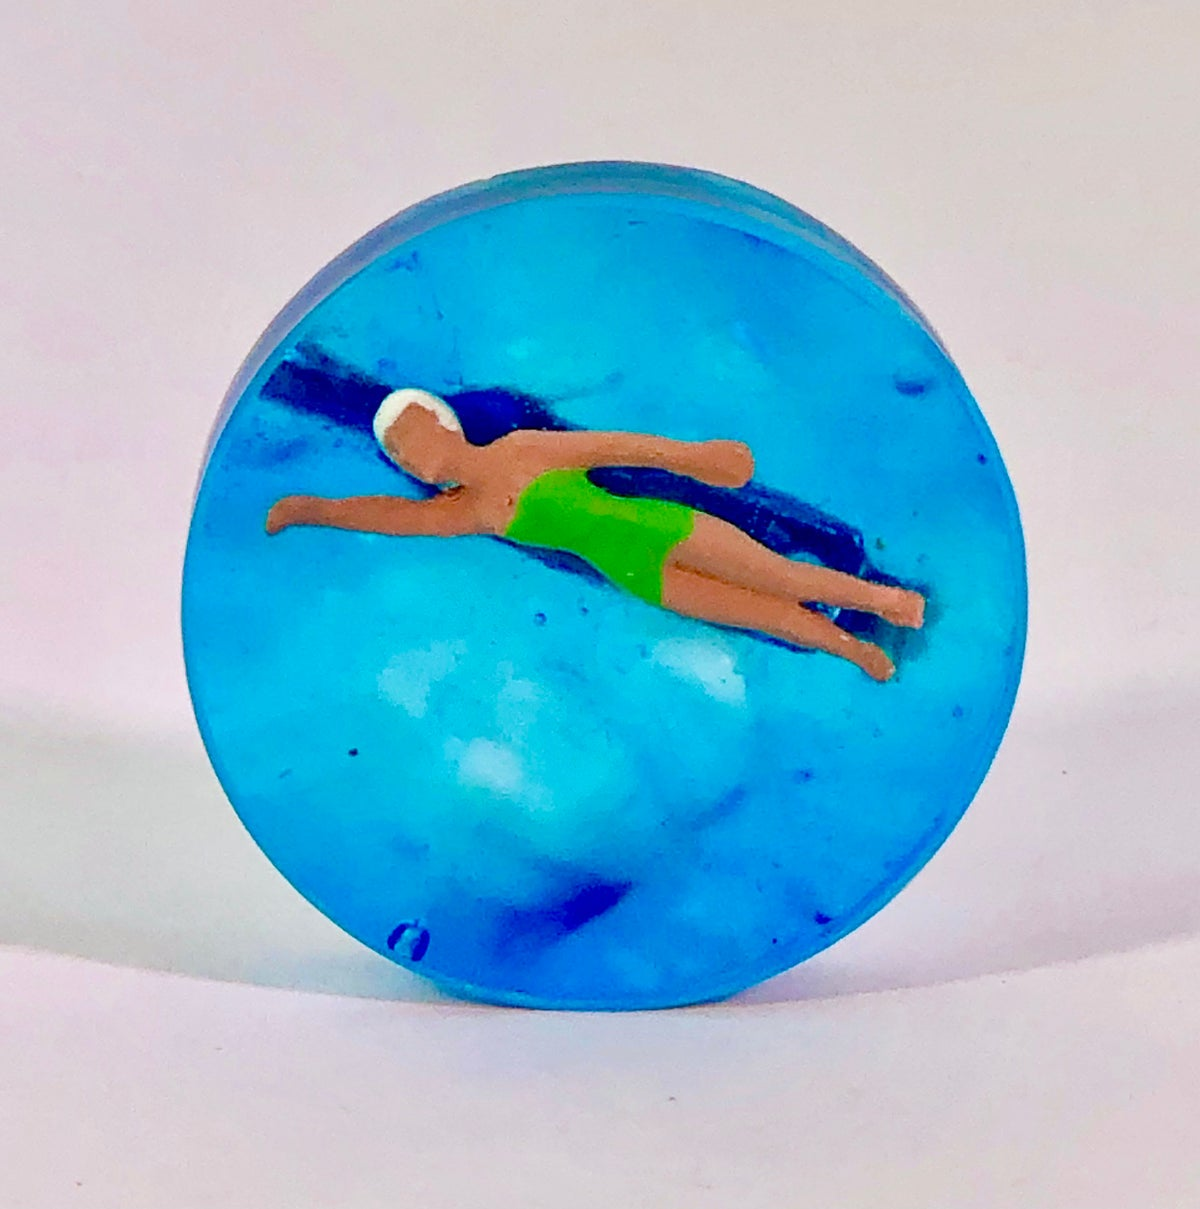 Image of Swimmer in resin